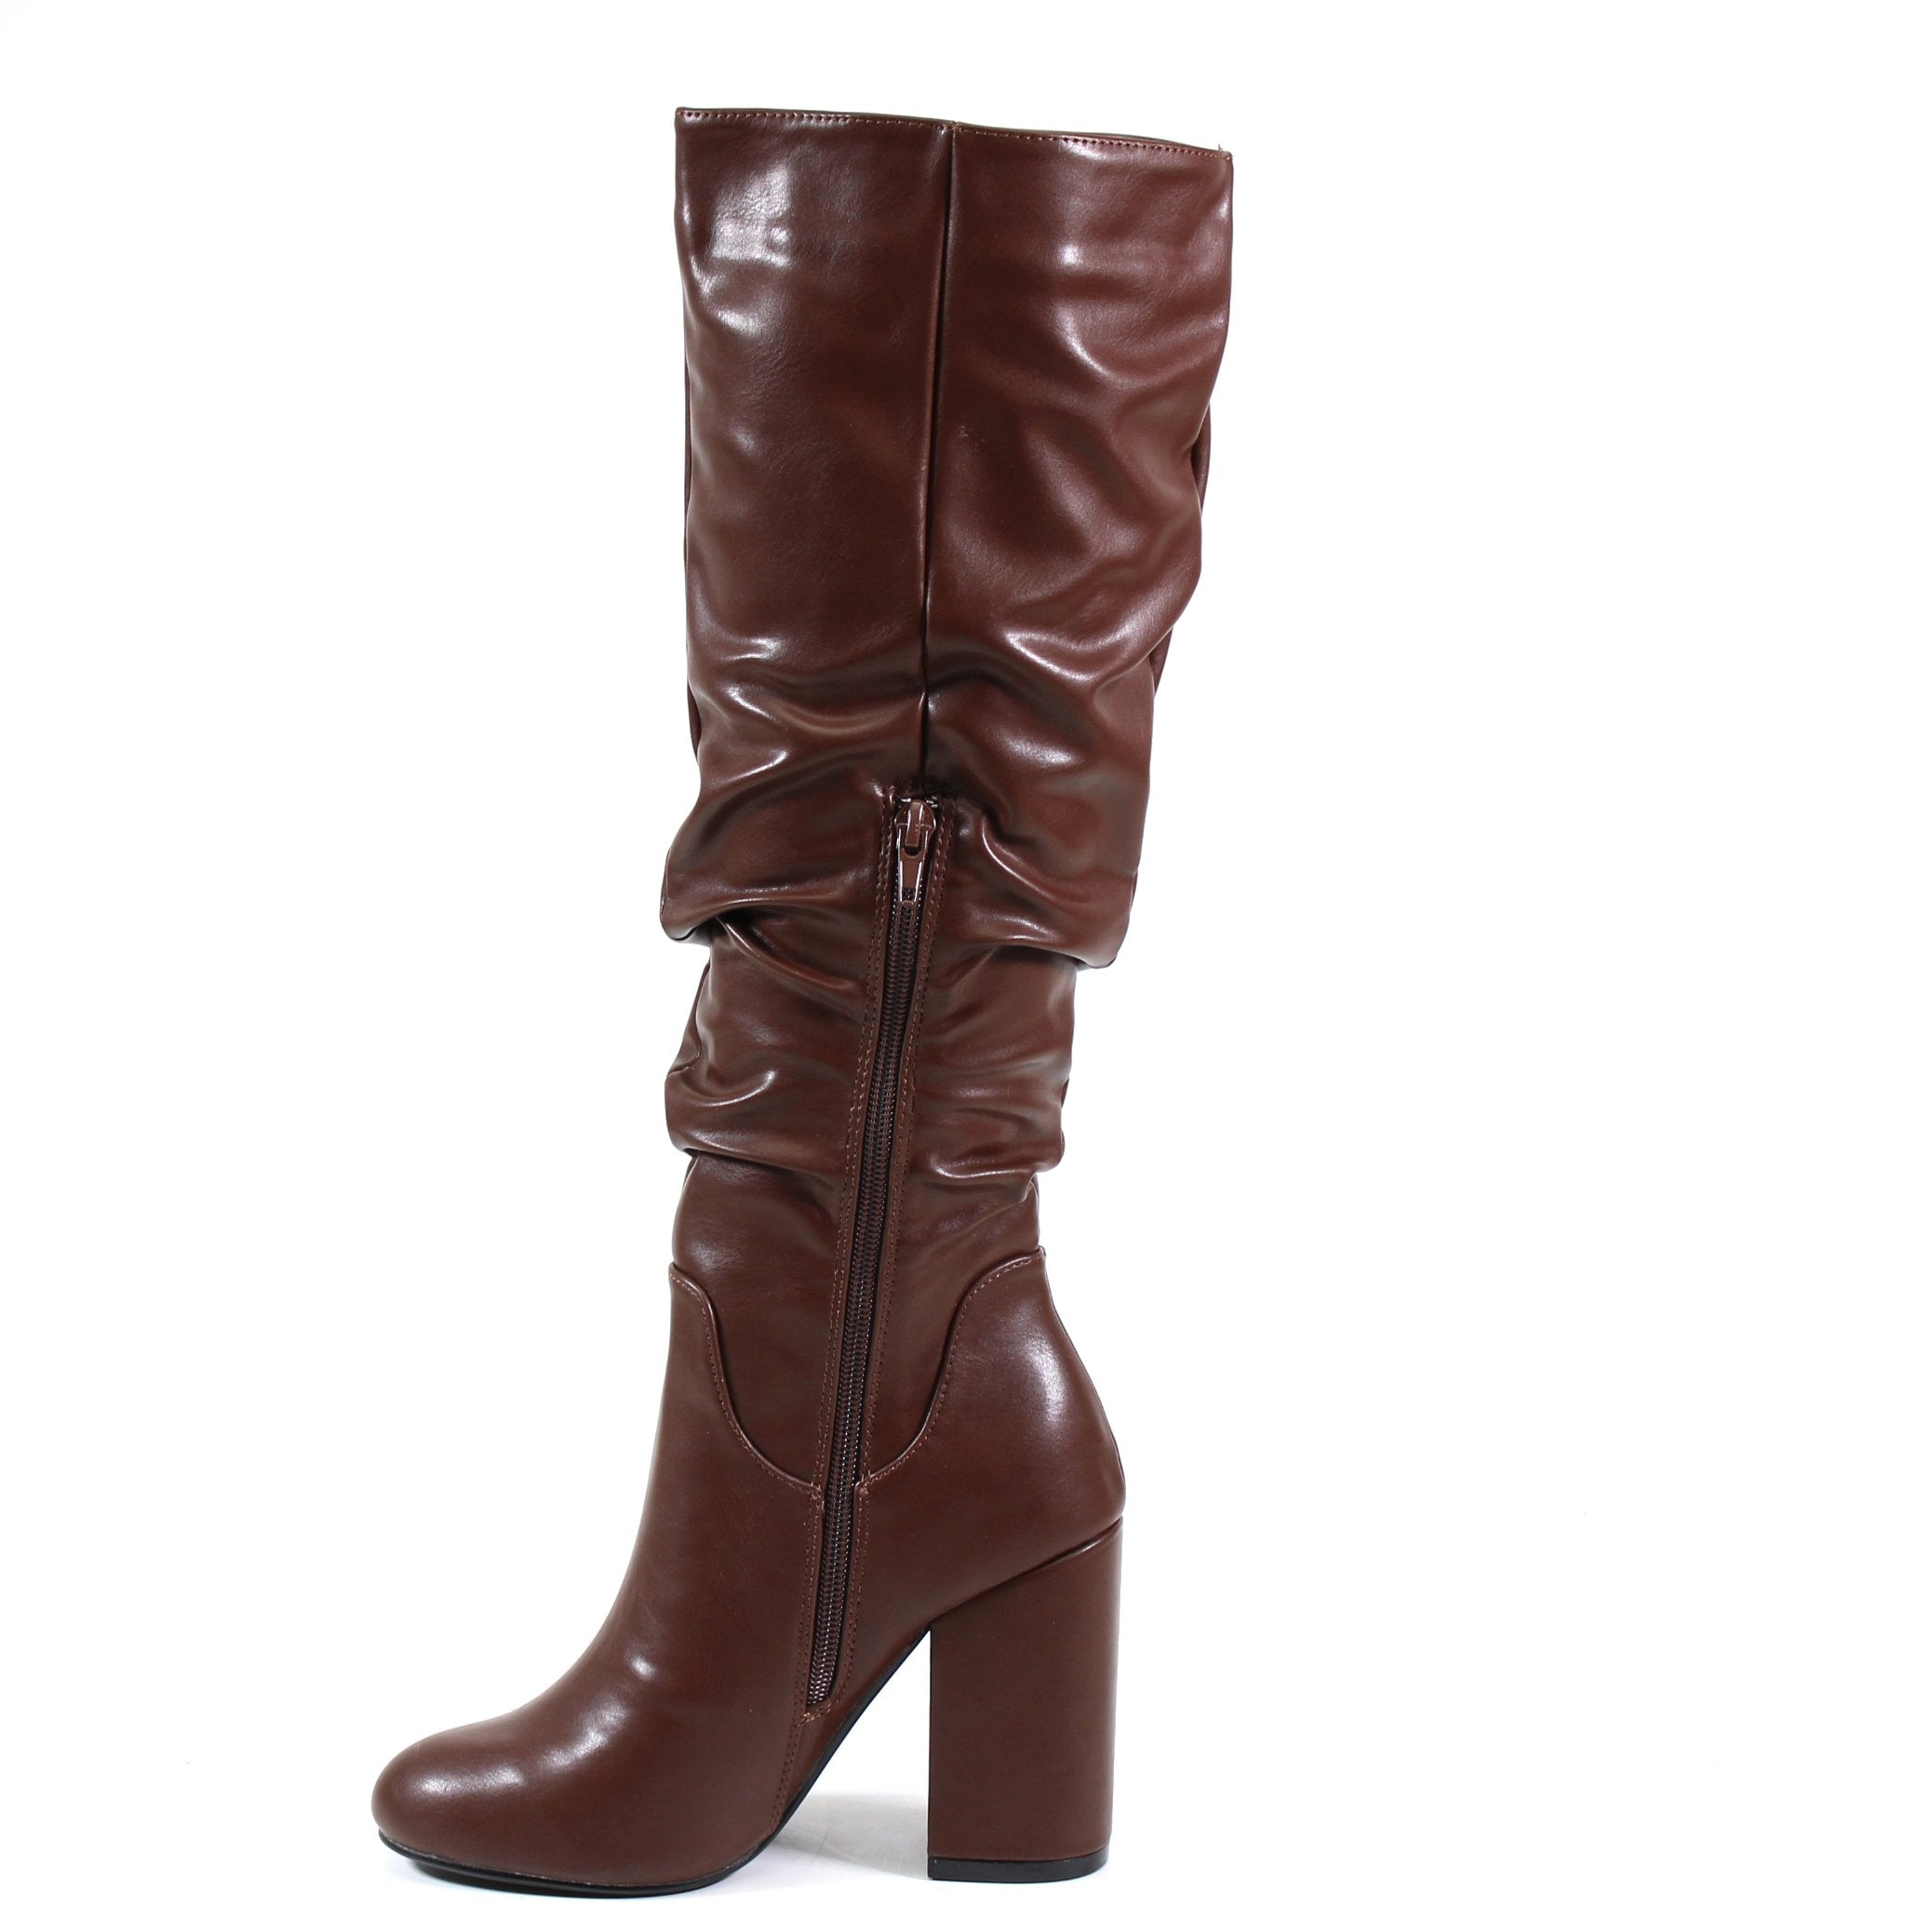 A DANA by Diba London is a mid-length slouch boot perfect for your casual or work looks.  Chocolate Vegan Leather or Tan Immi Suede covers the upper with an almond toe finish. Instant, effortless style with a self-covered block heel and partial inside zip